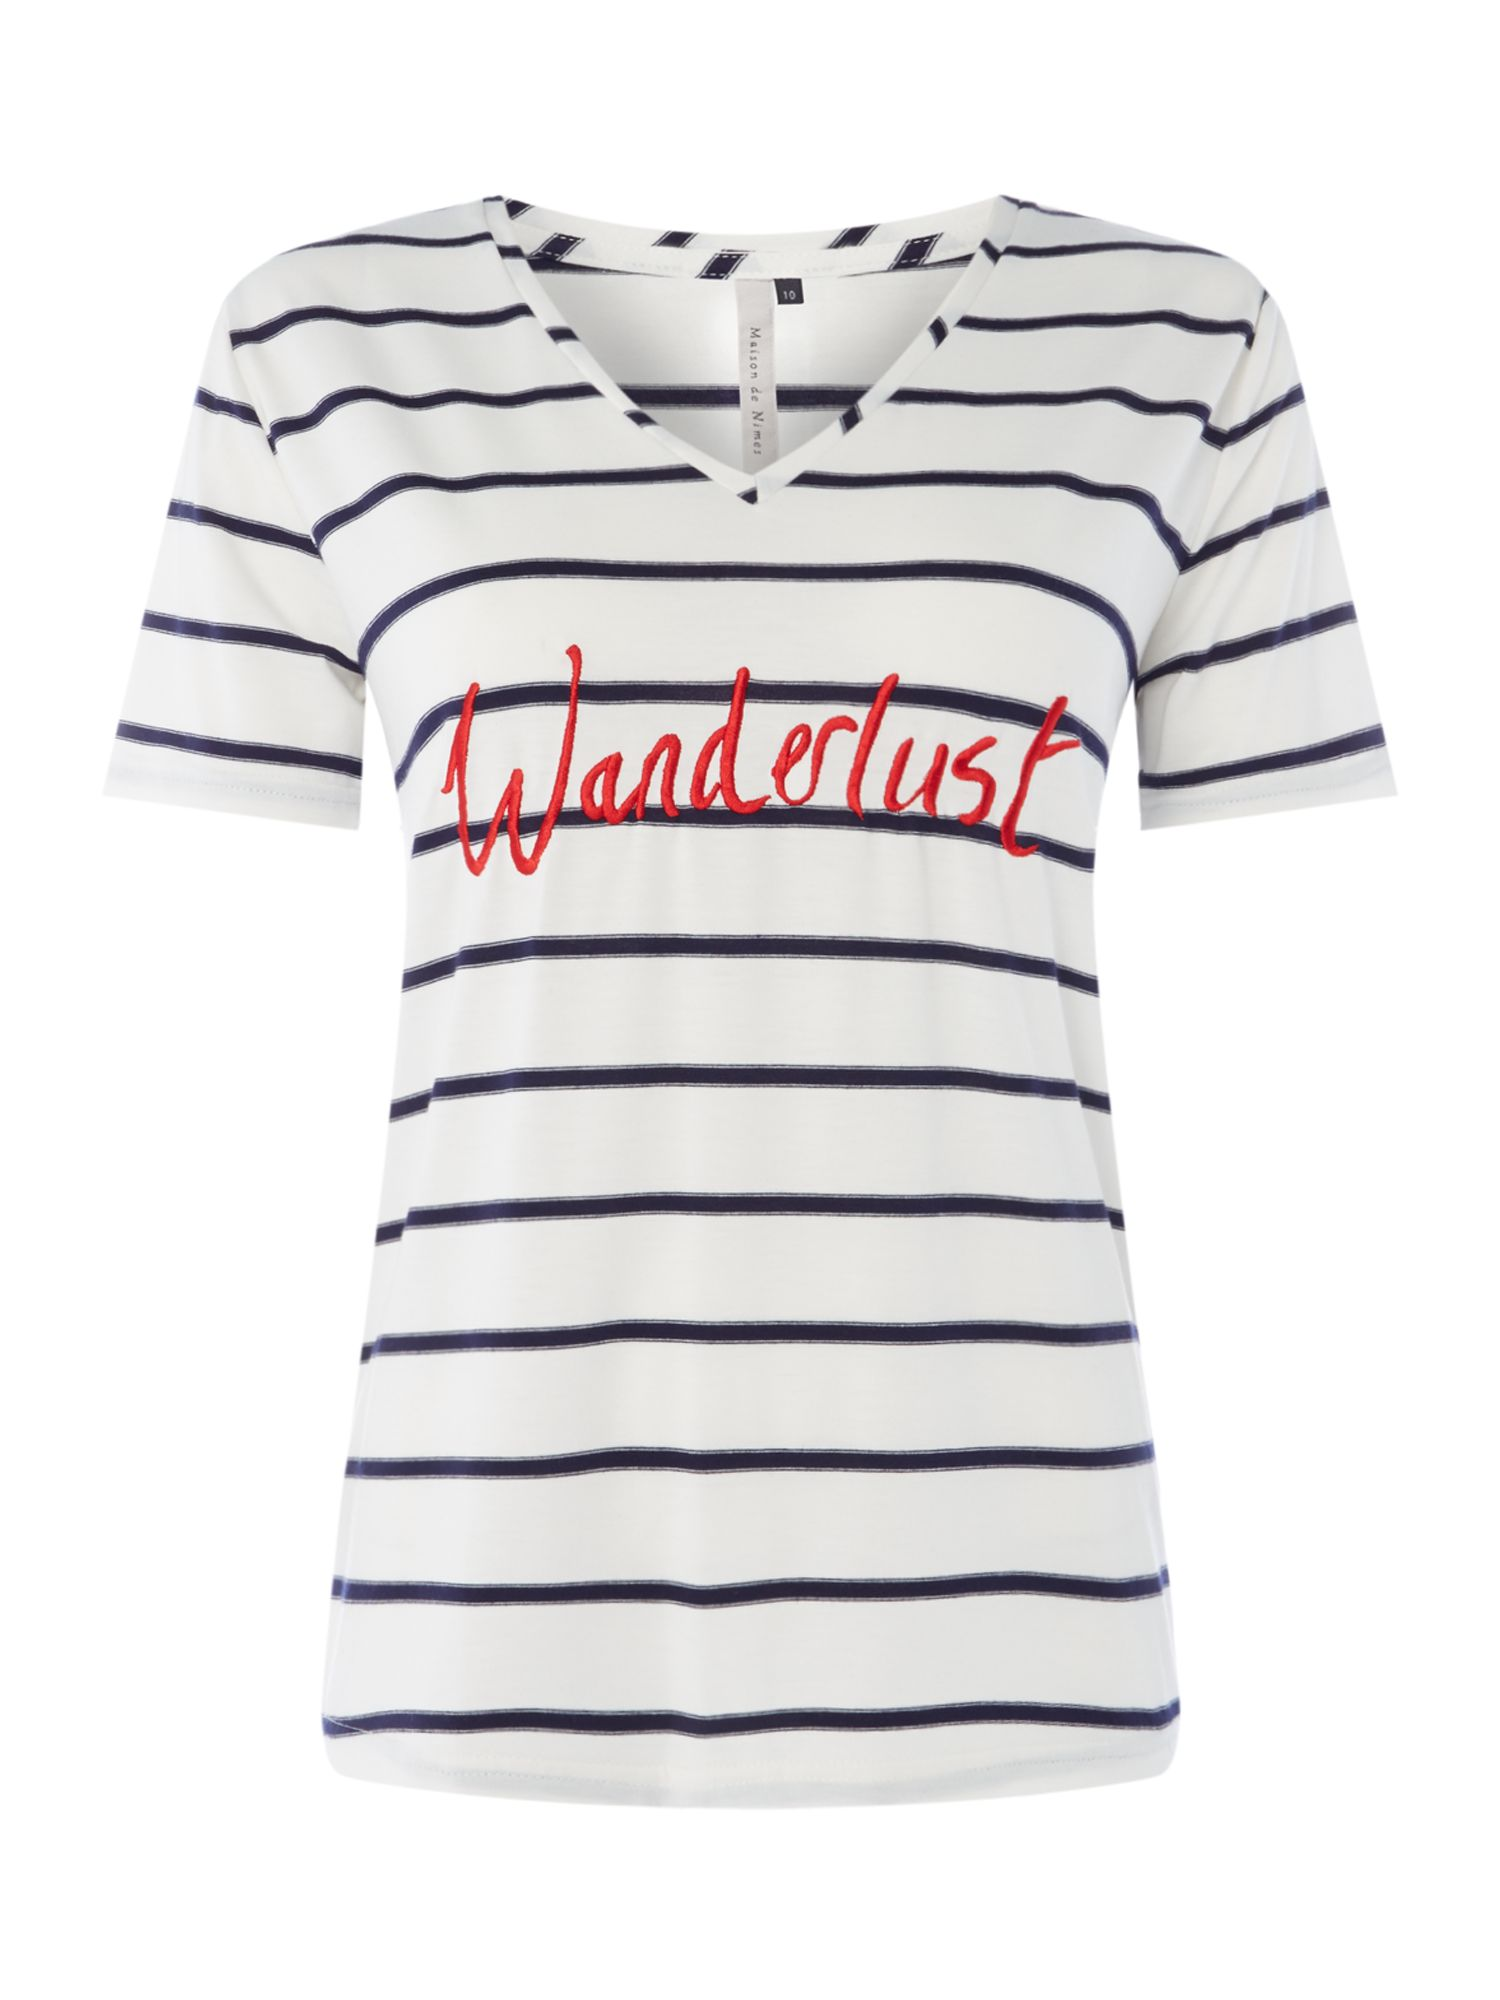 Maison De Nimes Wanderlust Embroidered Stripe Tee, Blue